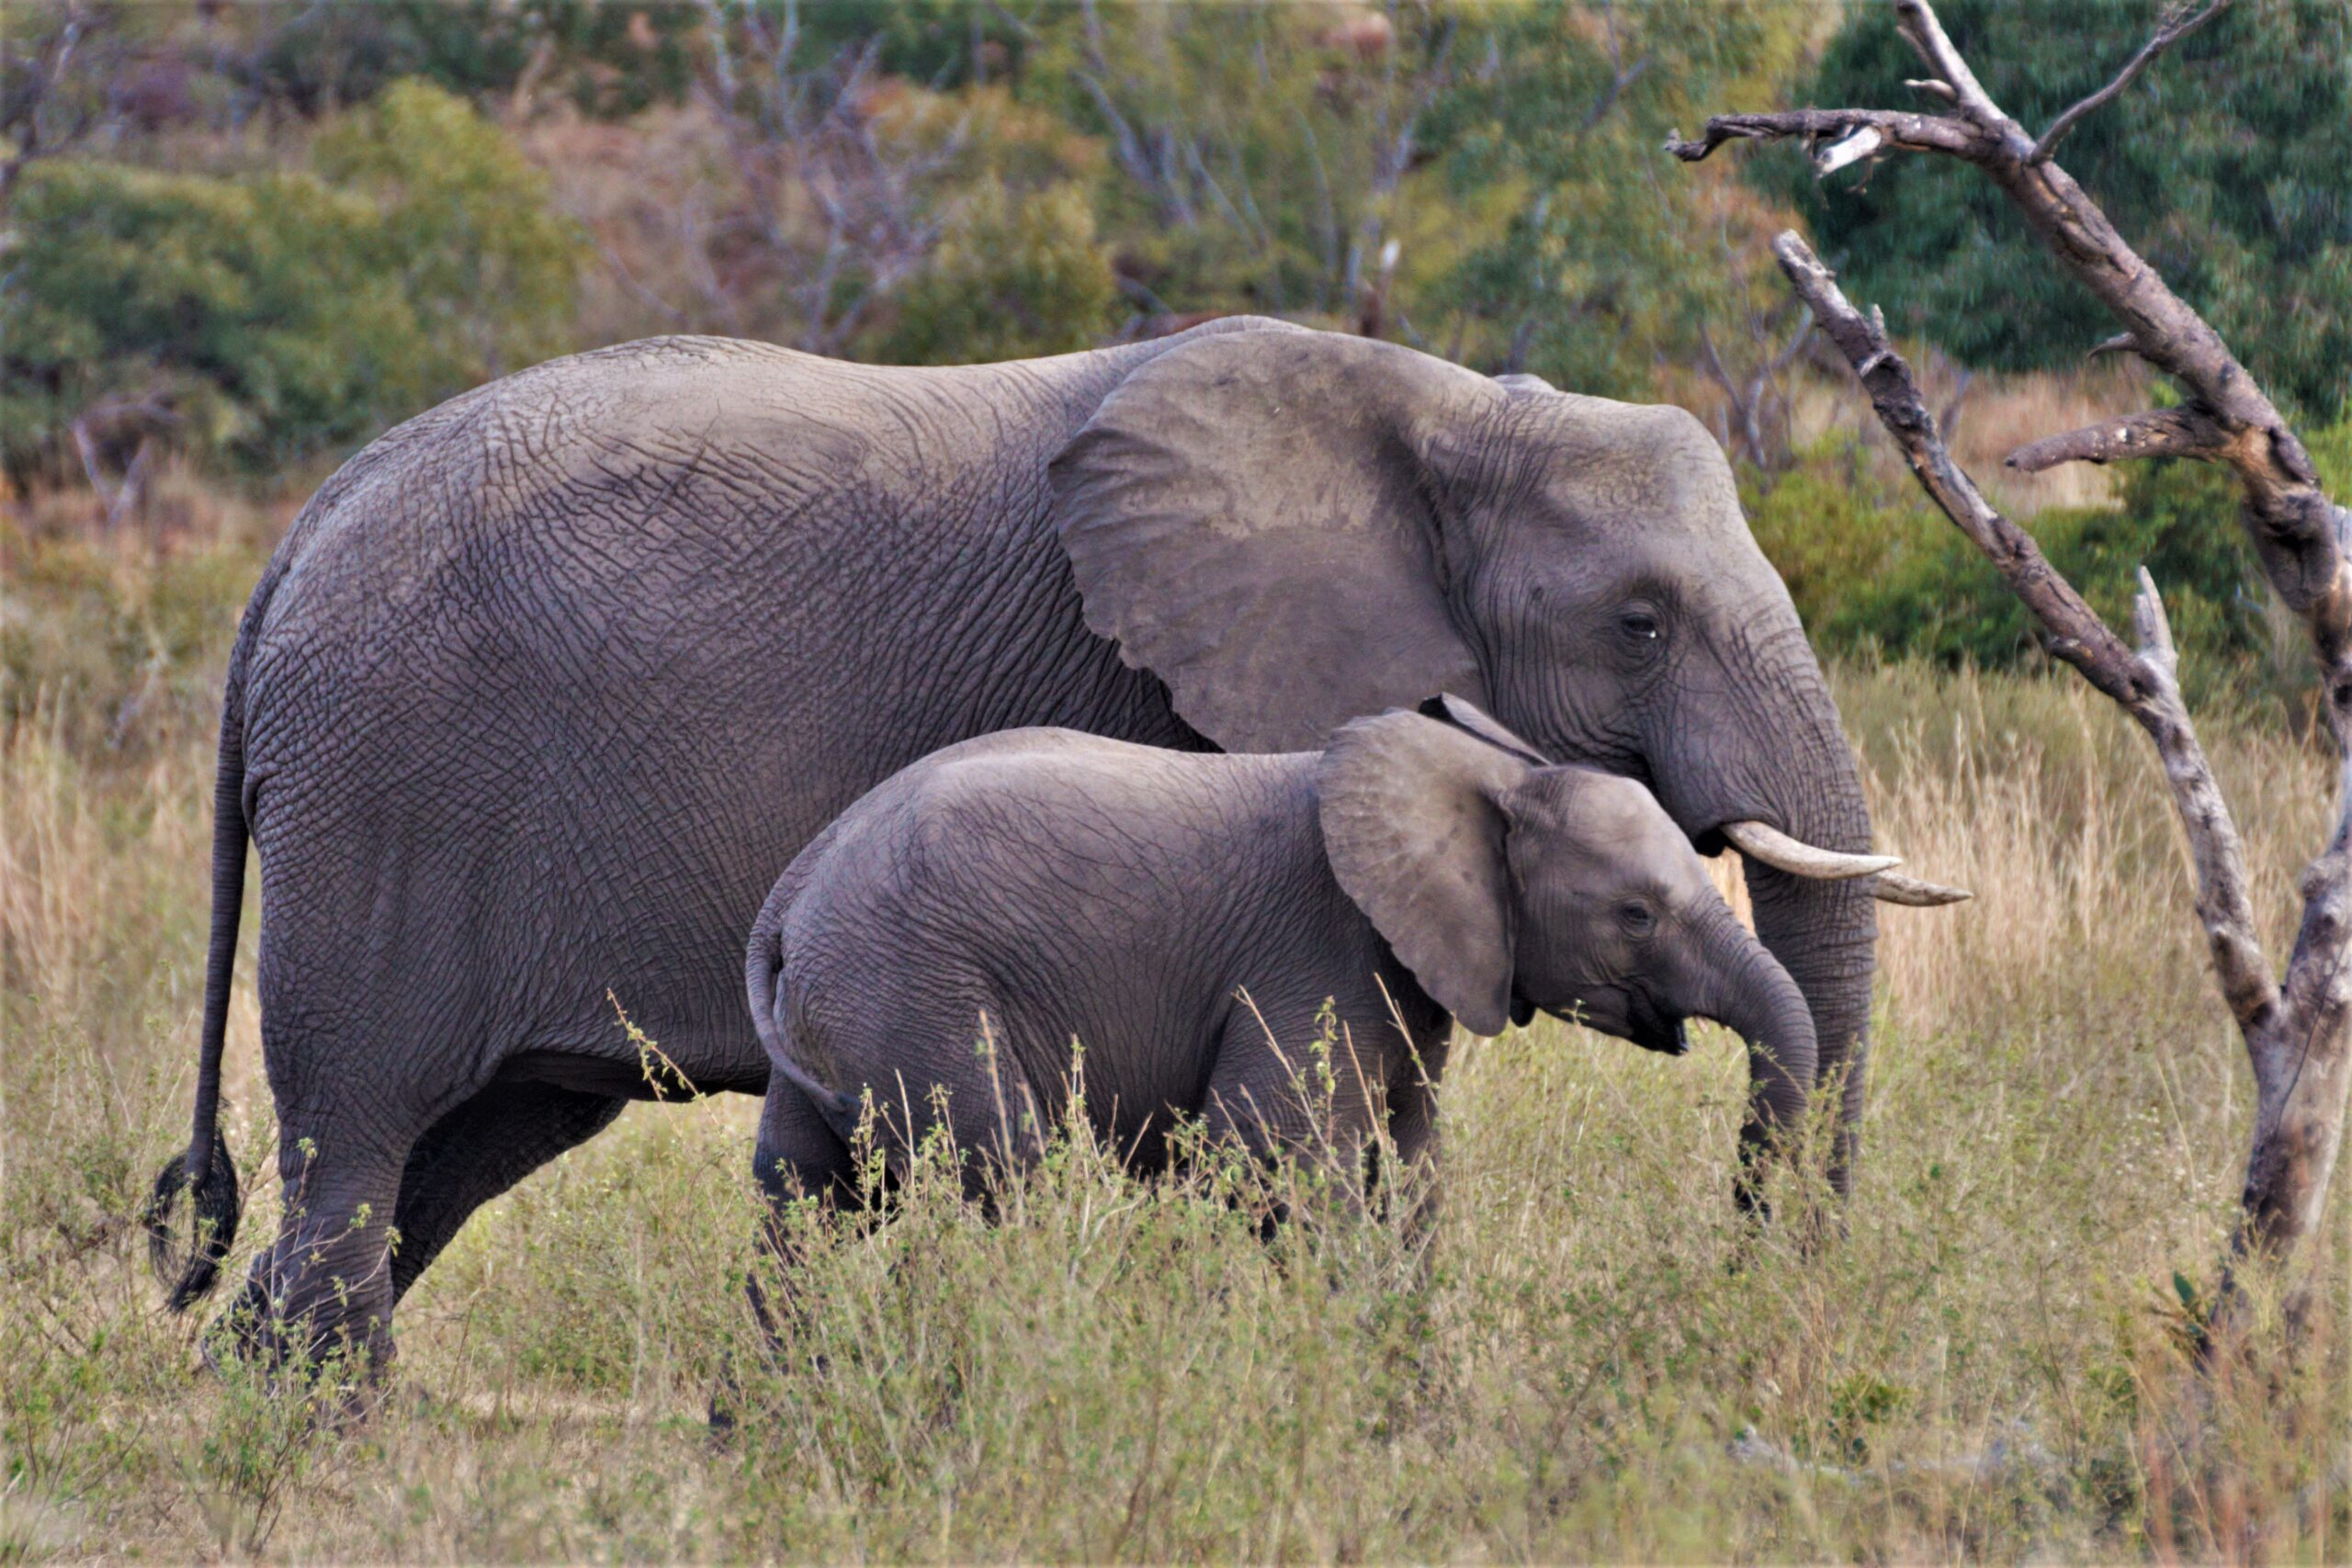 Matriarch elephant leads young